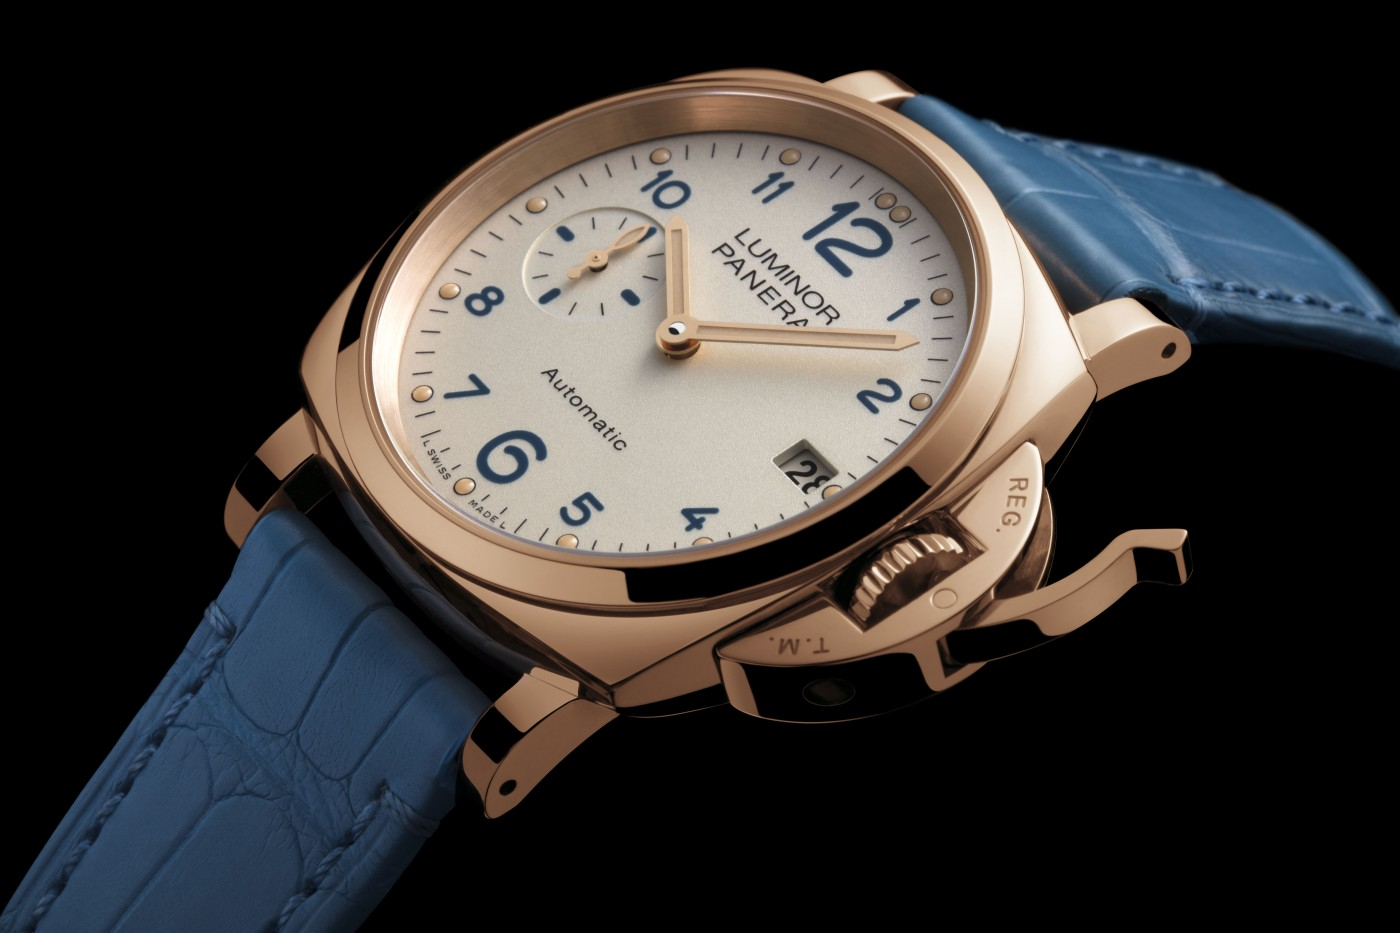 Discover the new Panerai products unveiled at the Geneva watch salon